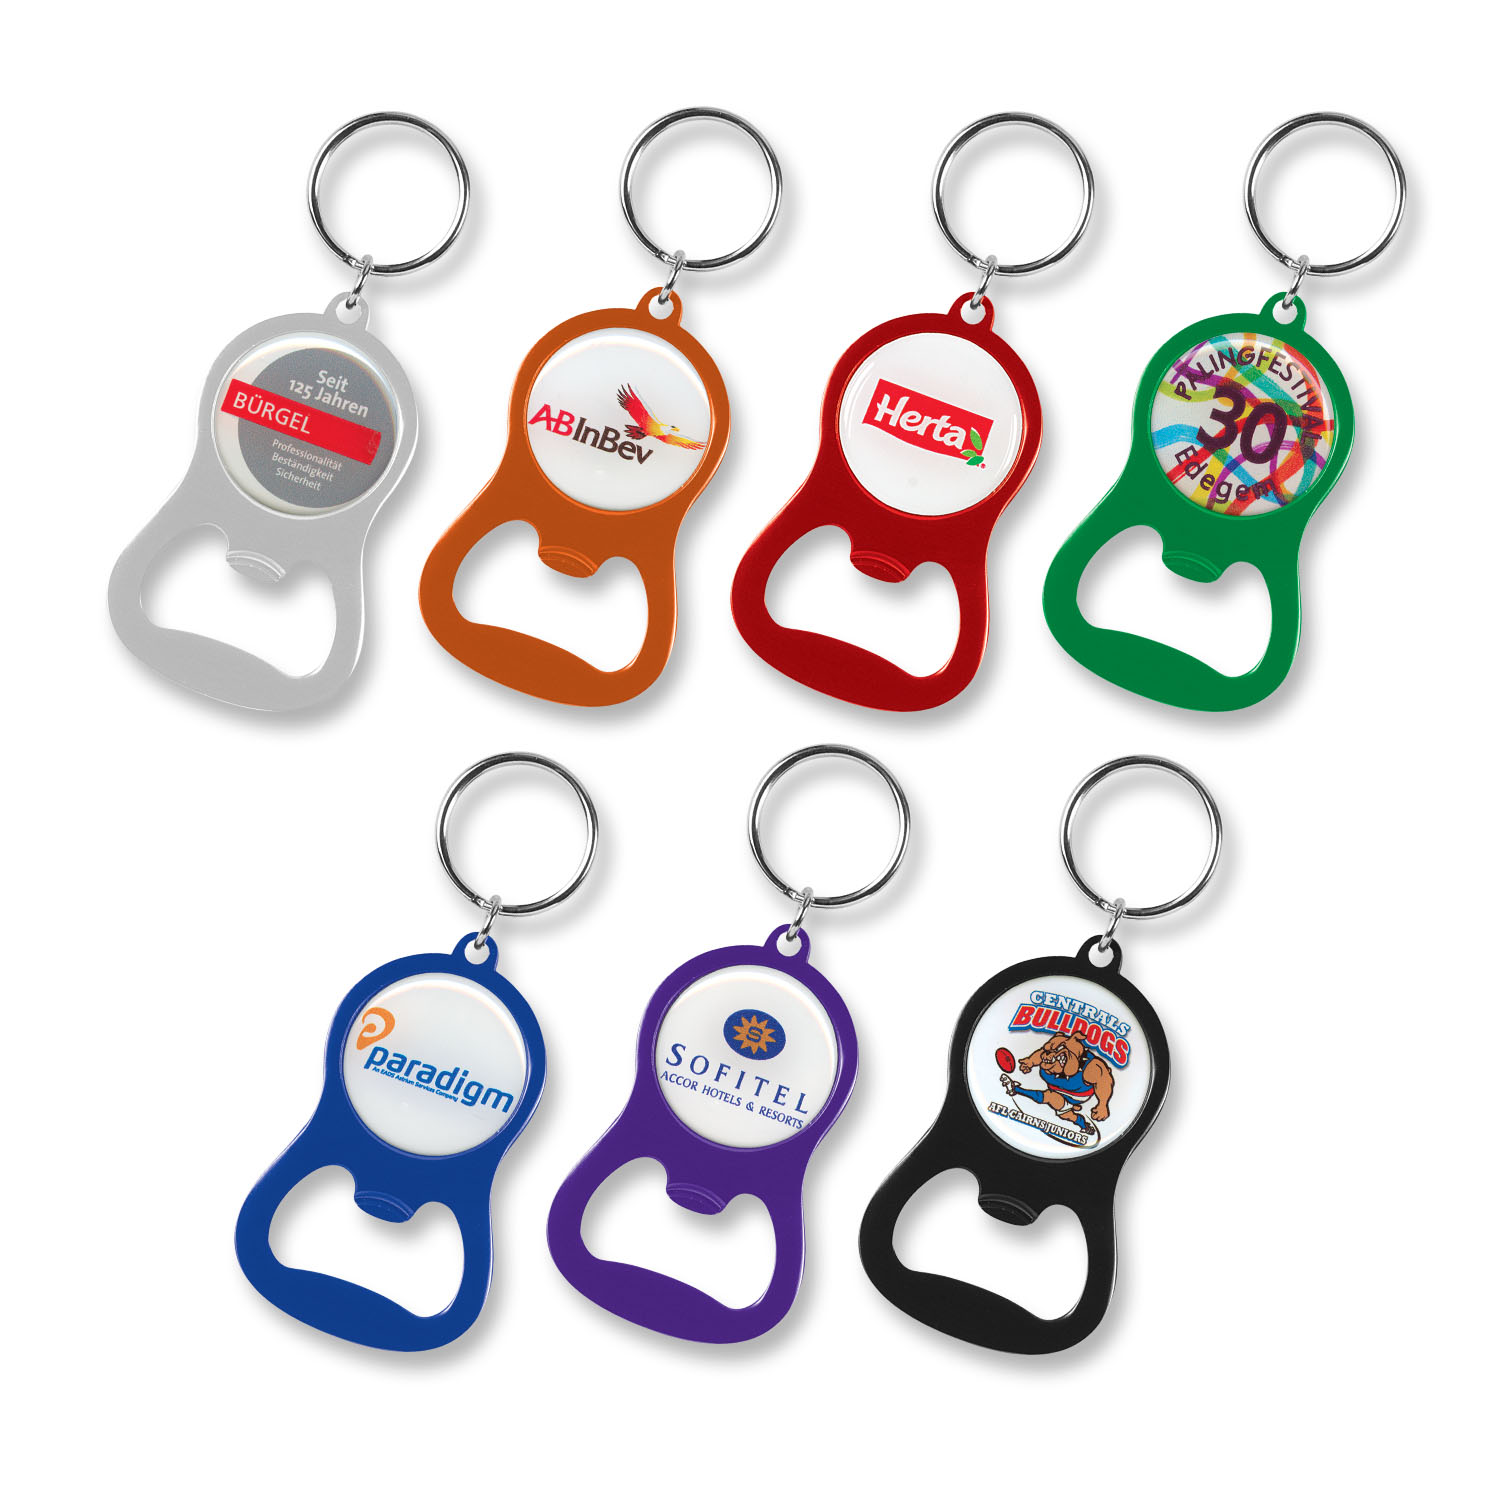 Key Ring Bottle Opener.jpg